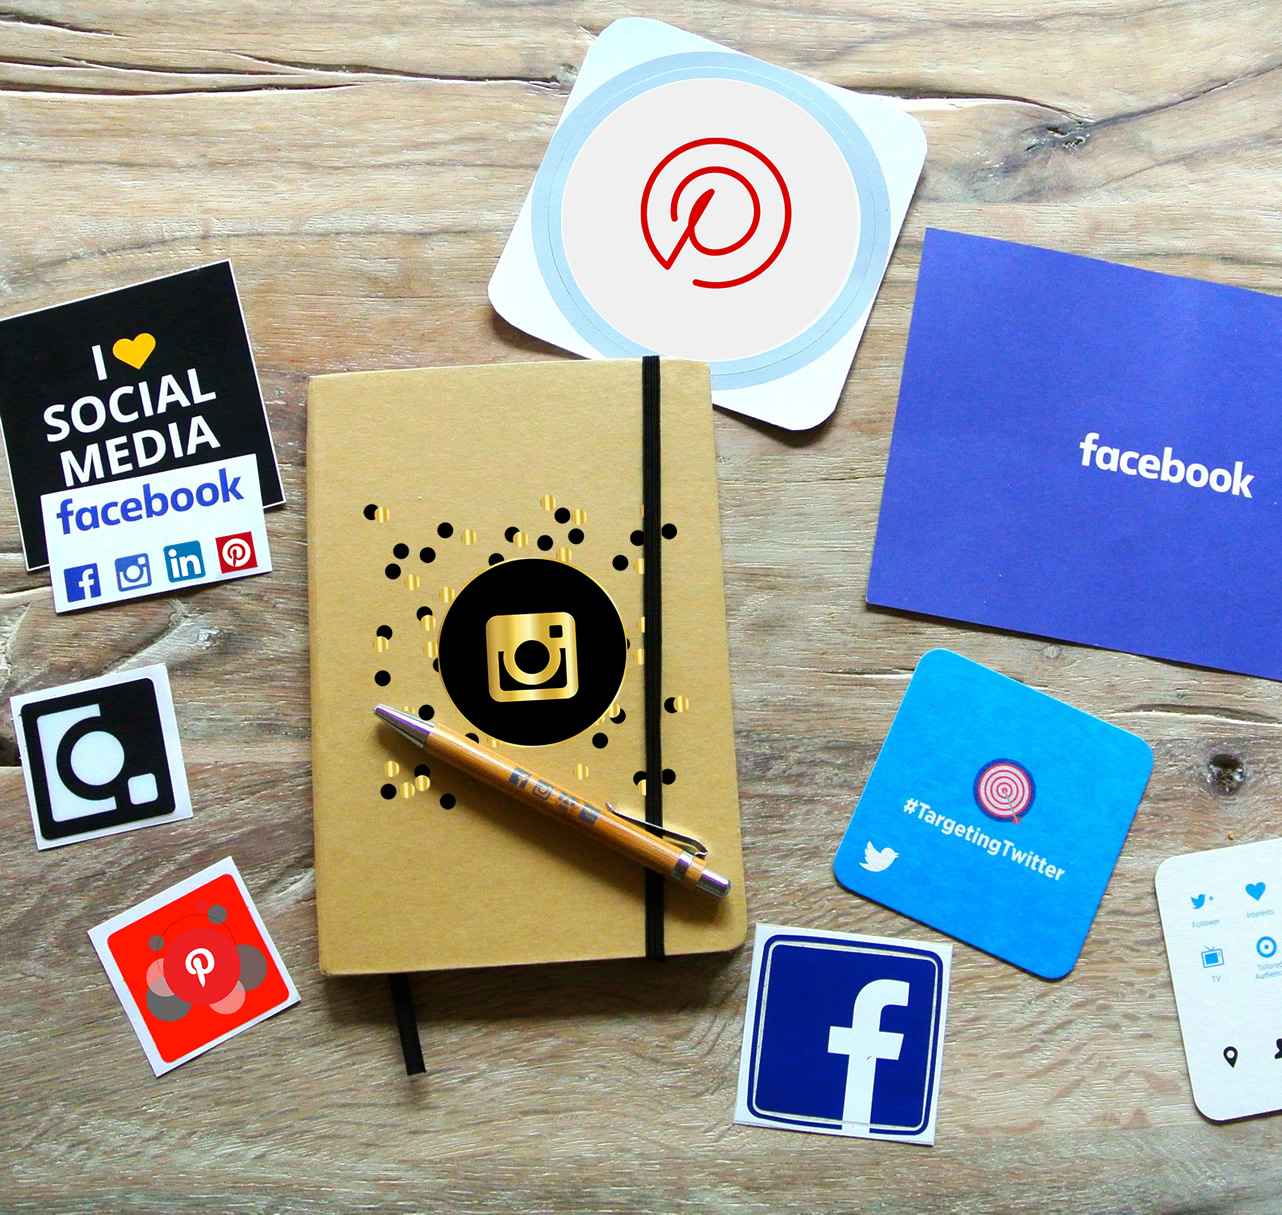 lehigh valley social media marketing services for entrepreneurs and small businesses